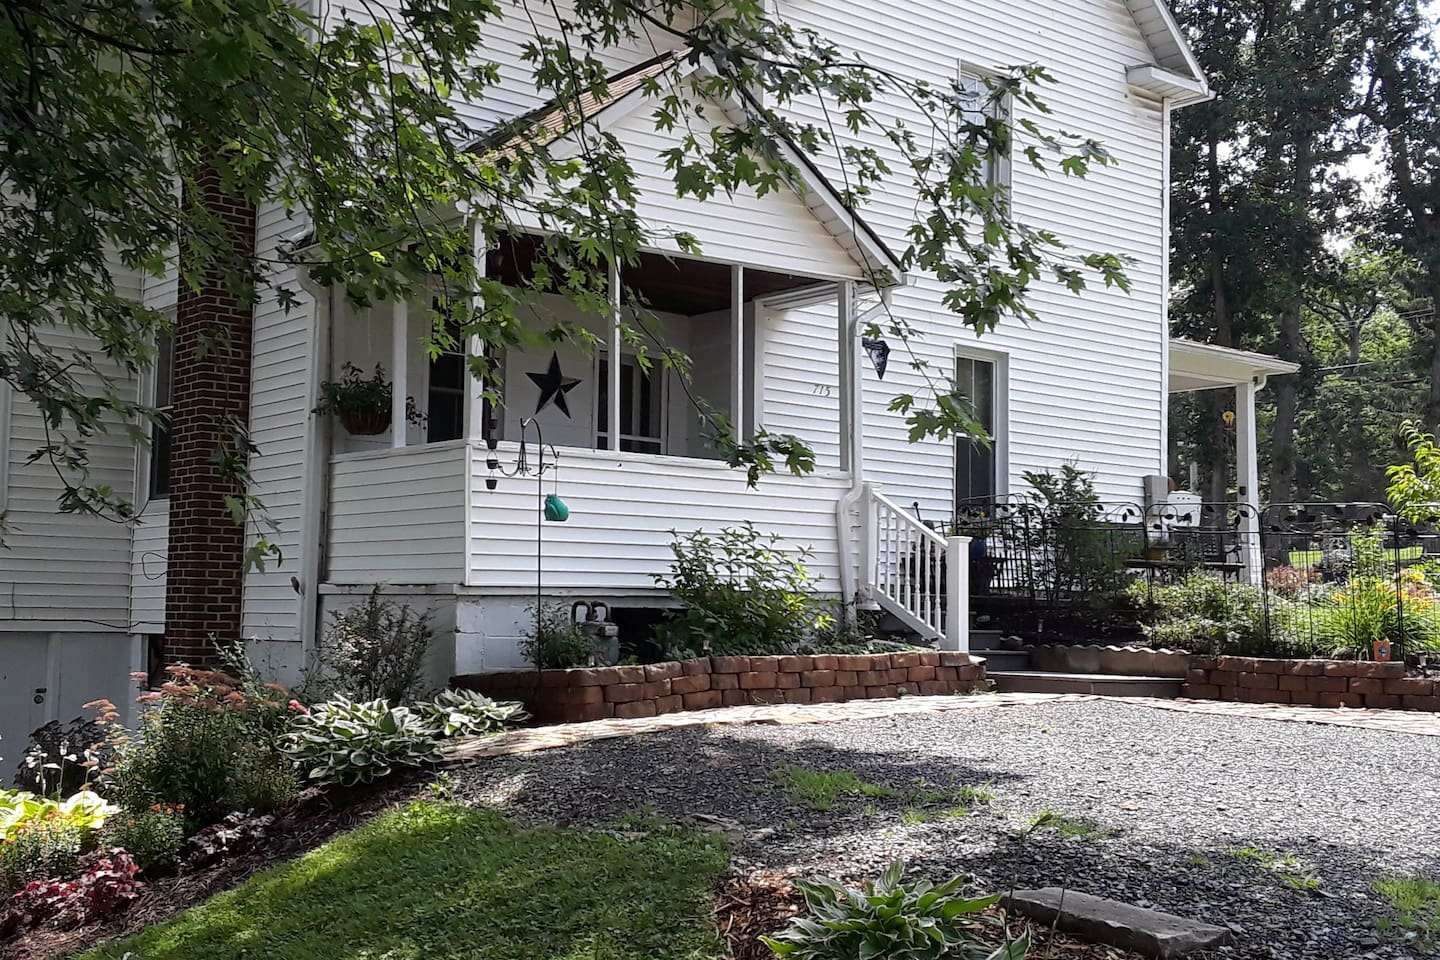 This charming attached apartment with separate entrance, porch and parking for 2 vehicles, is part of the house build in 1900. It is in a quiet residential neighborhood.